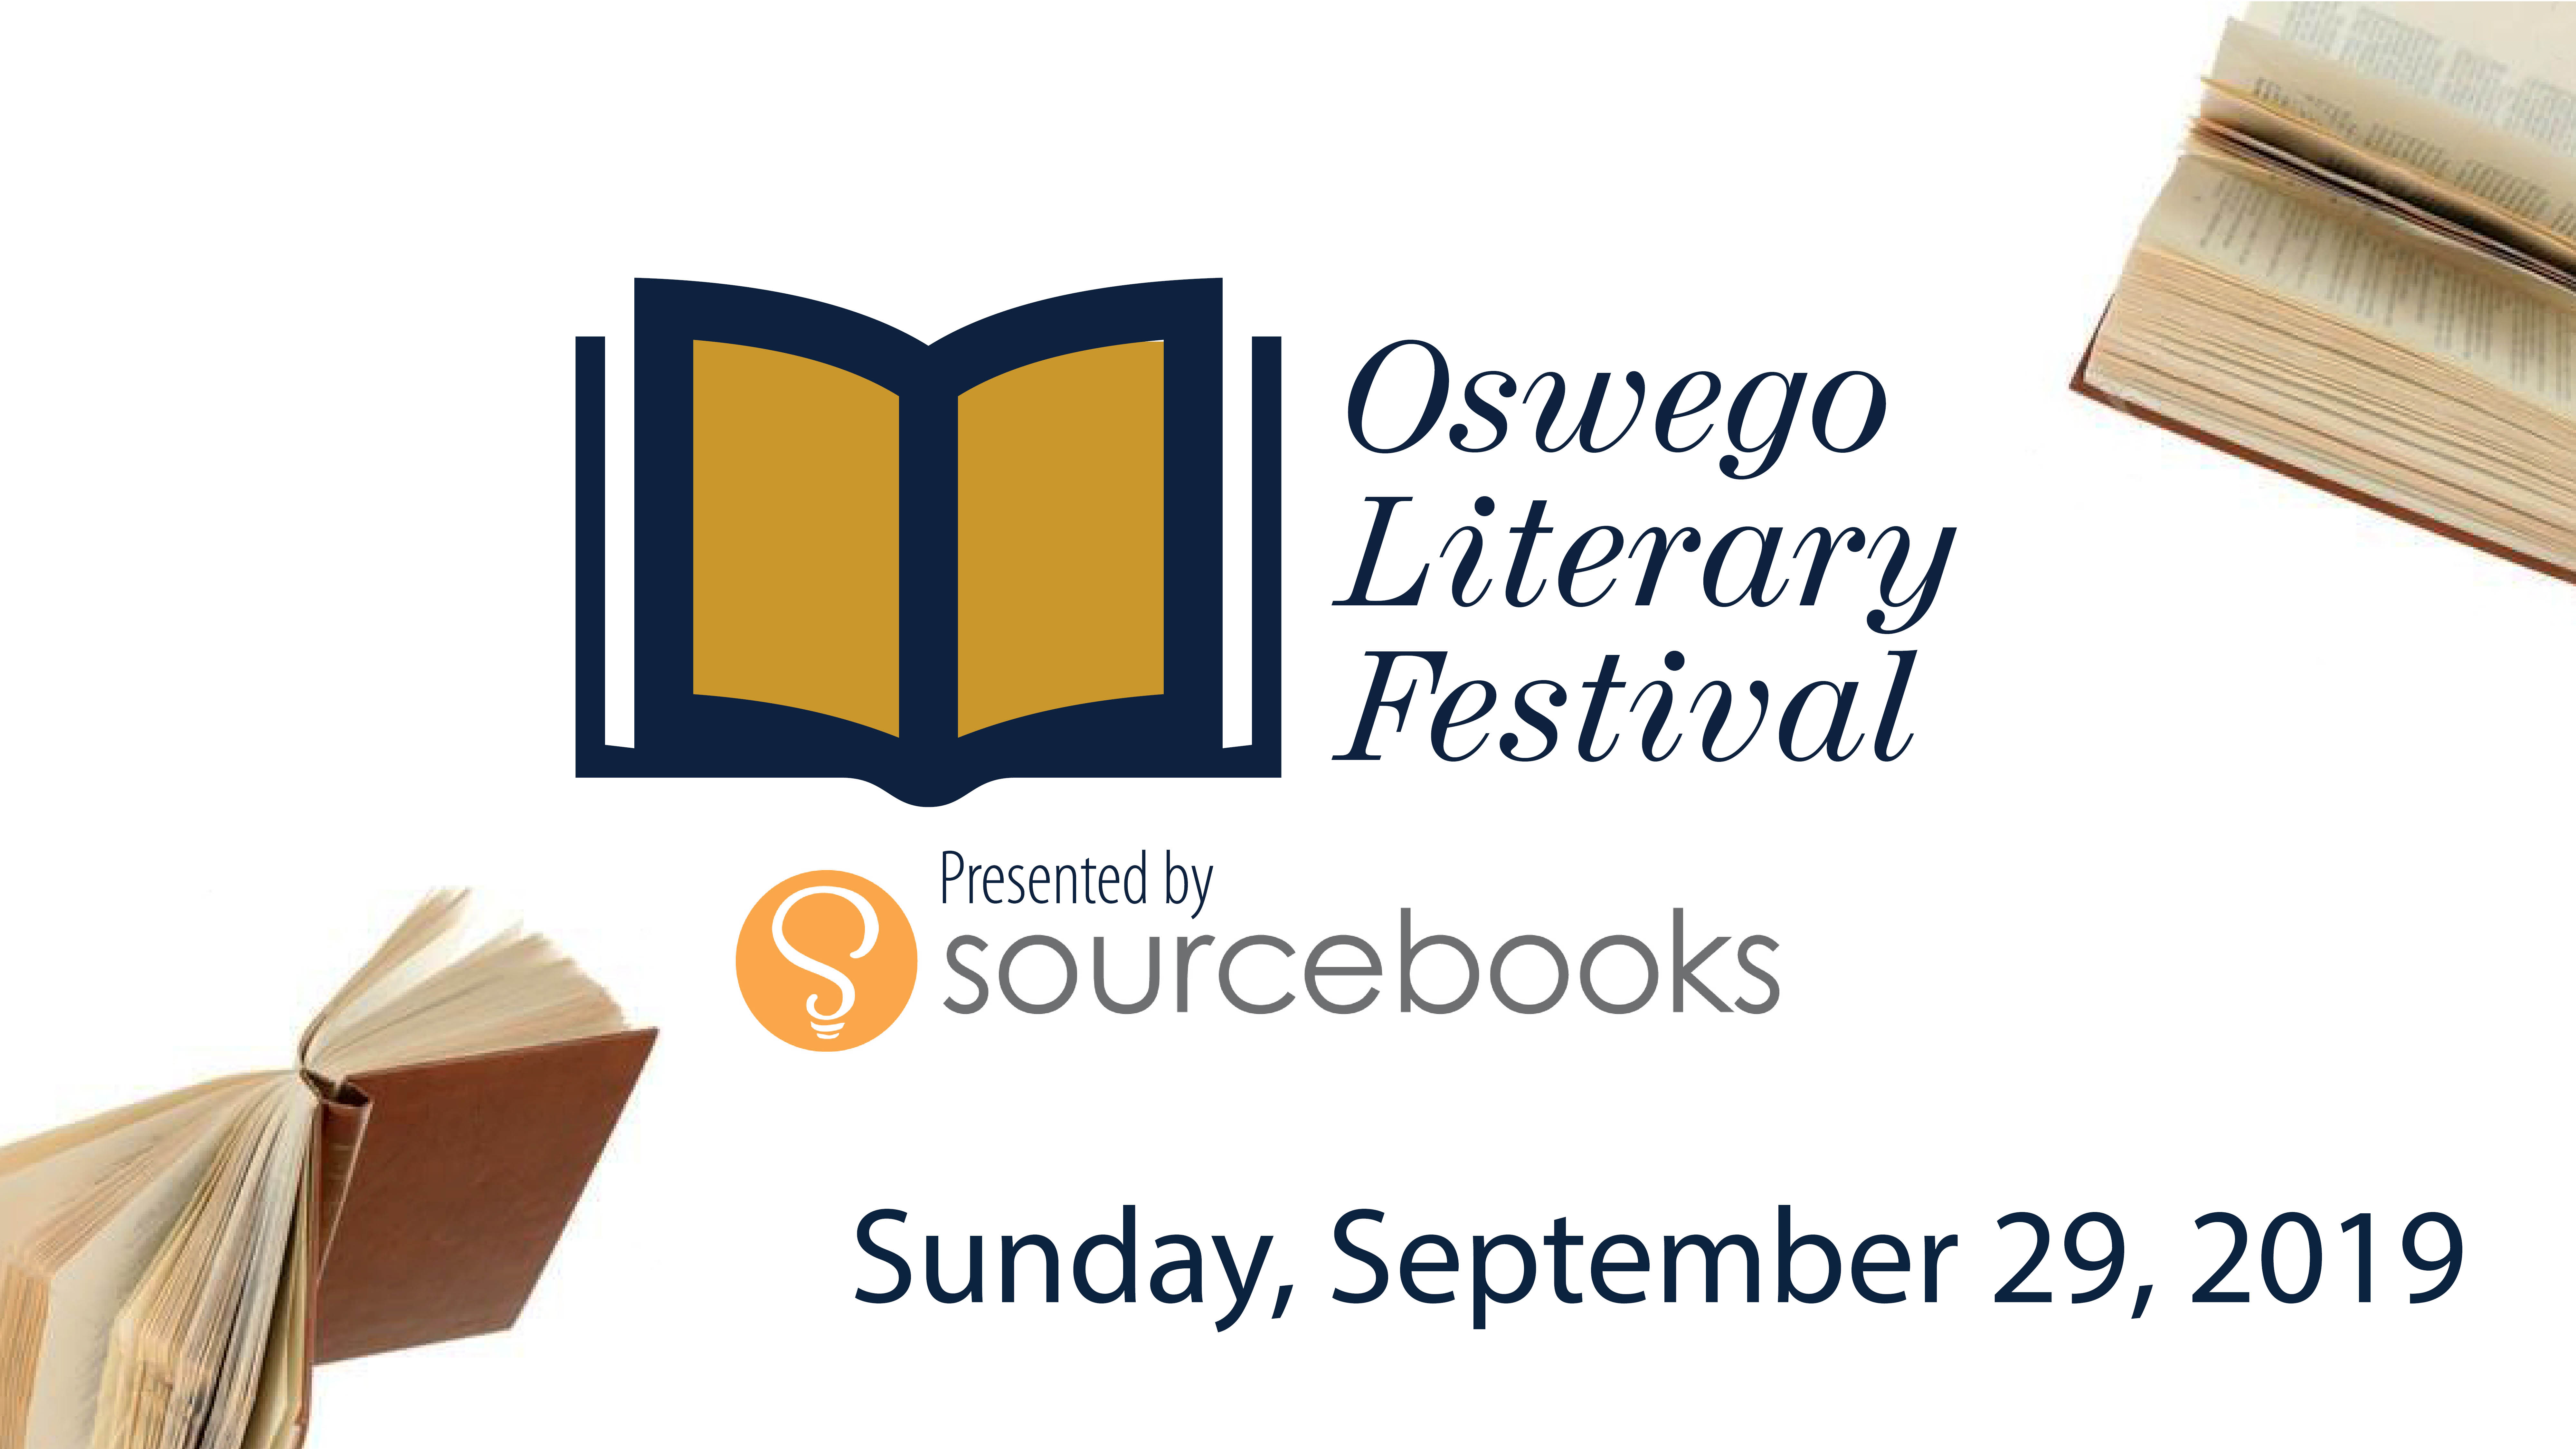 lit fest, presented by Sourcebooks